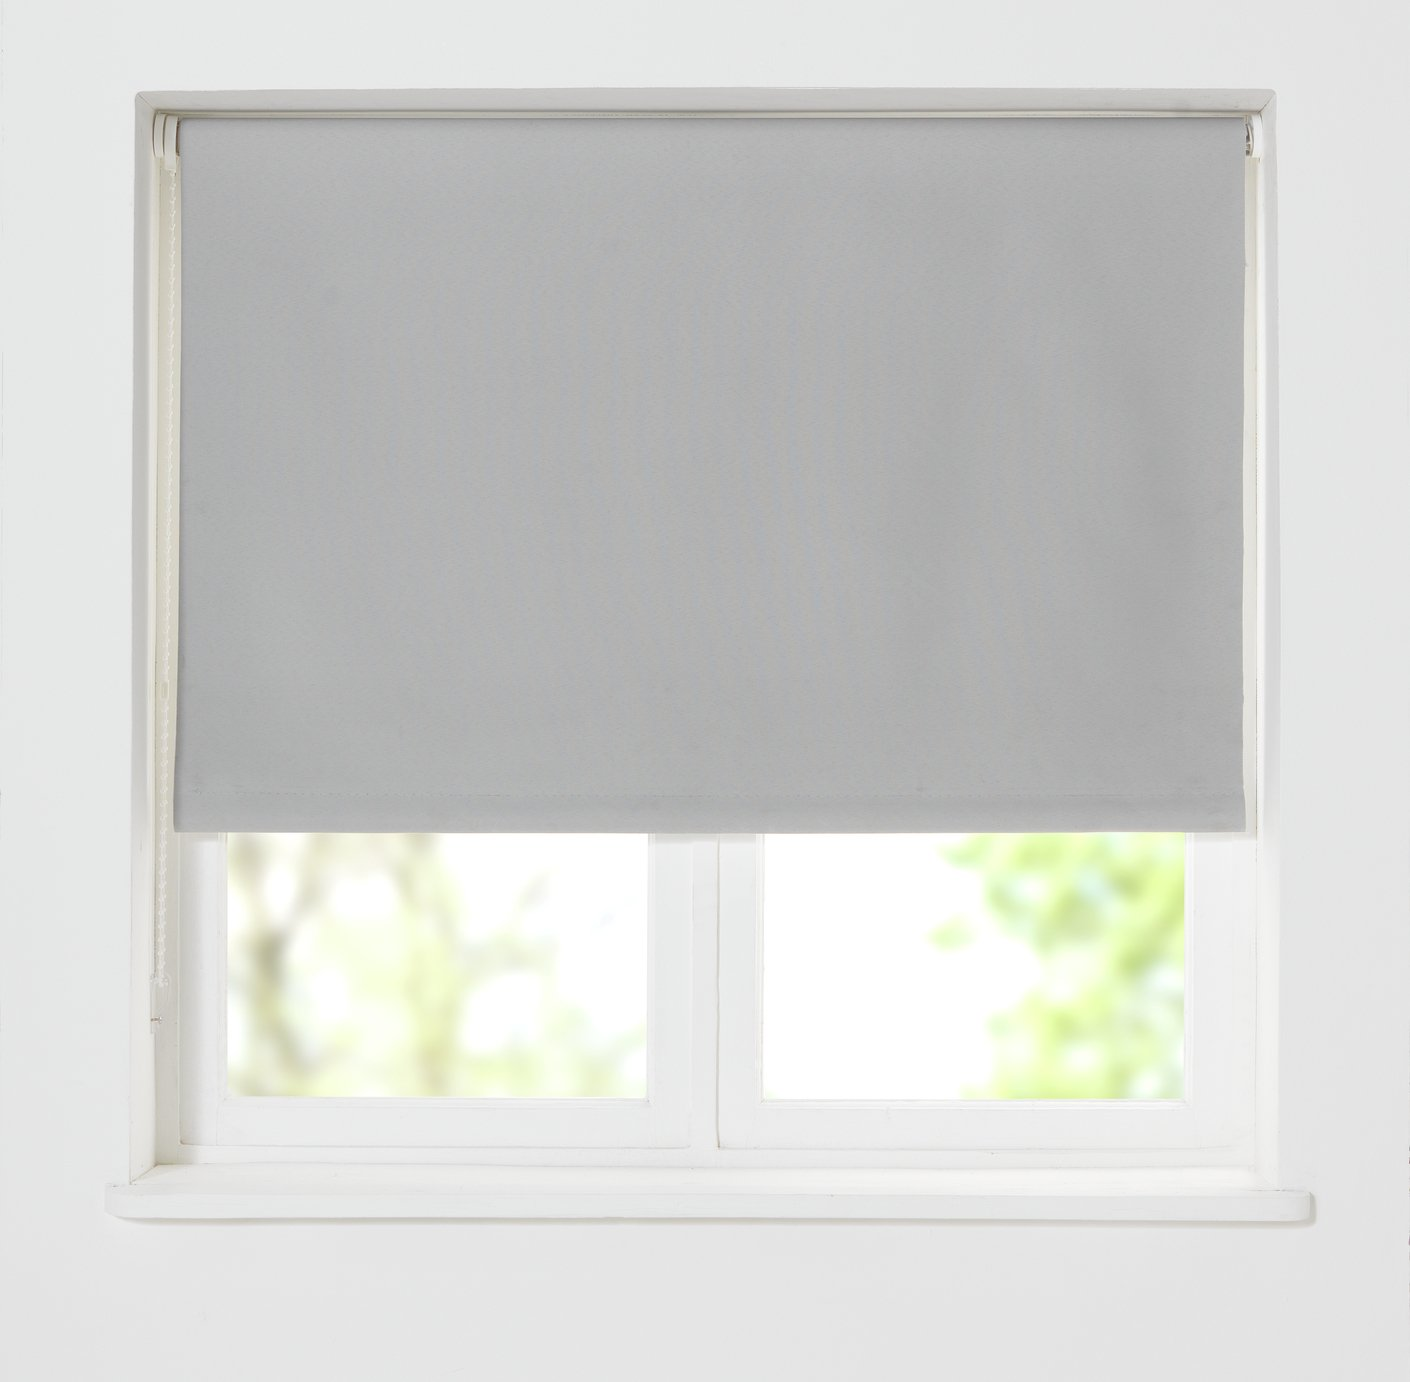 Image of ColourMatch Thermal Blackout Roller Blind - 3ft - Dove Grey